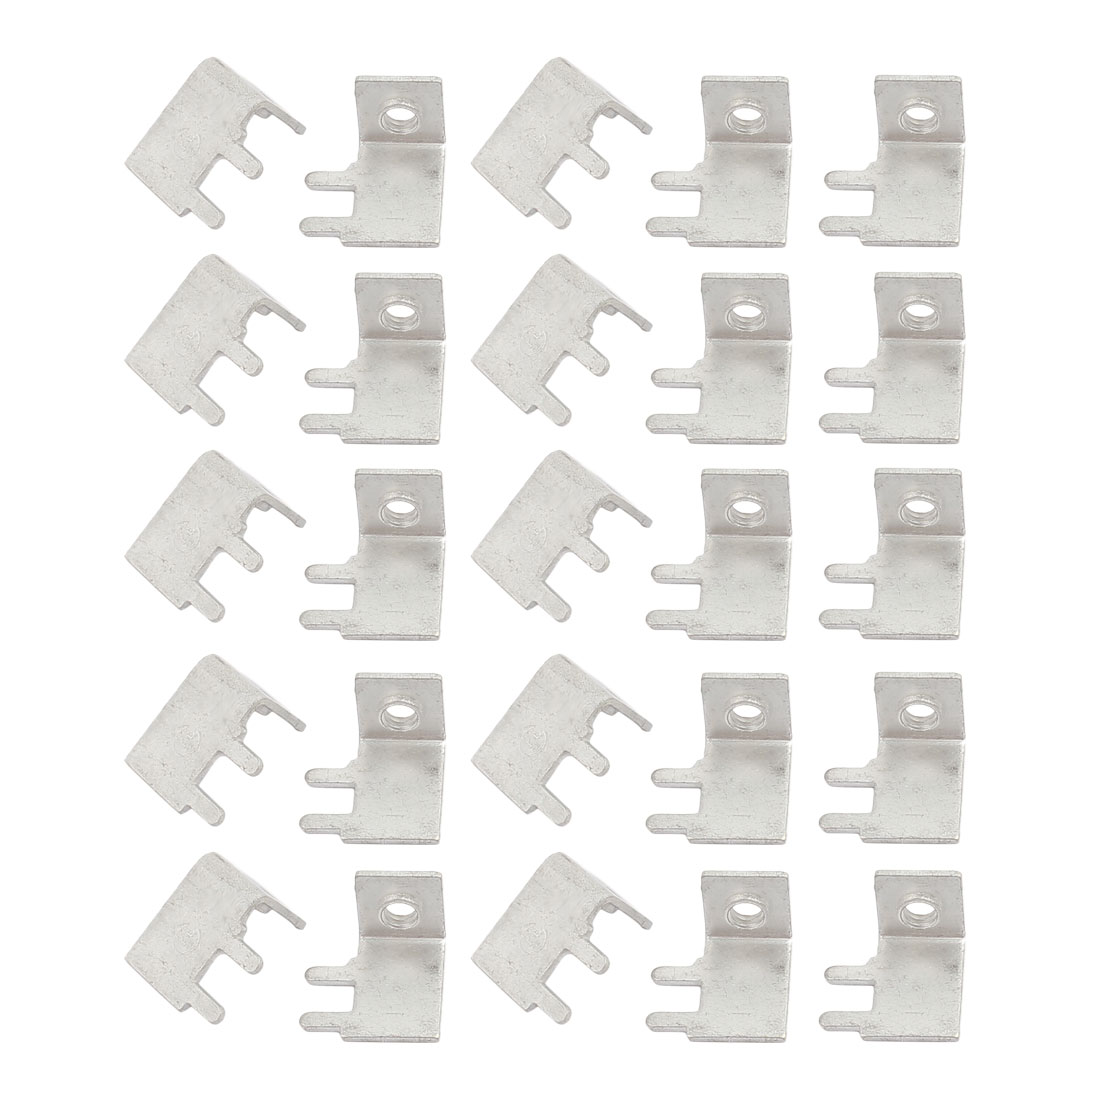 25 Pcs M3 2P Type 1 Side Face Snap in Screw Terminal Block Terminals Only